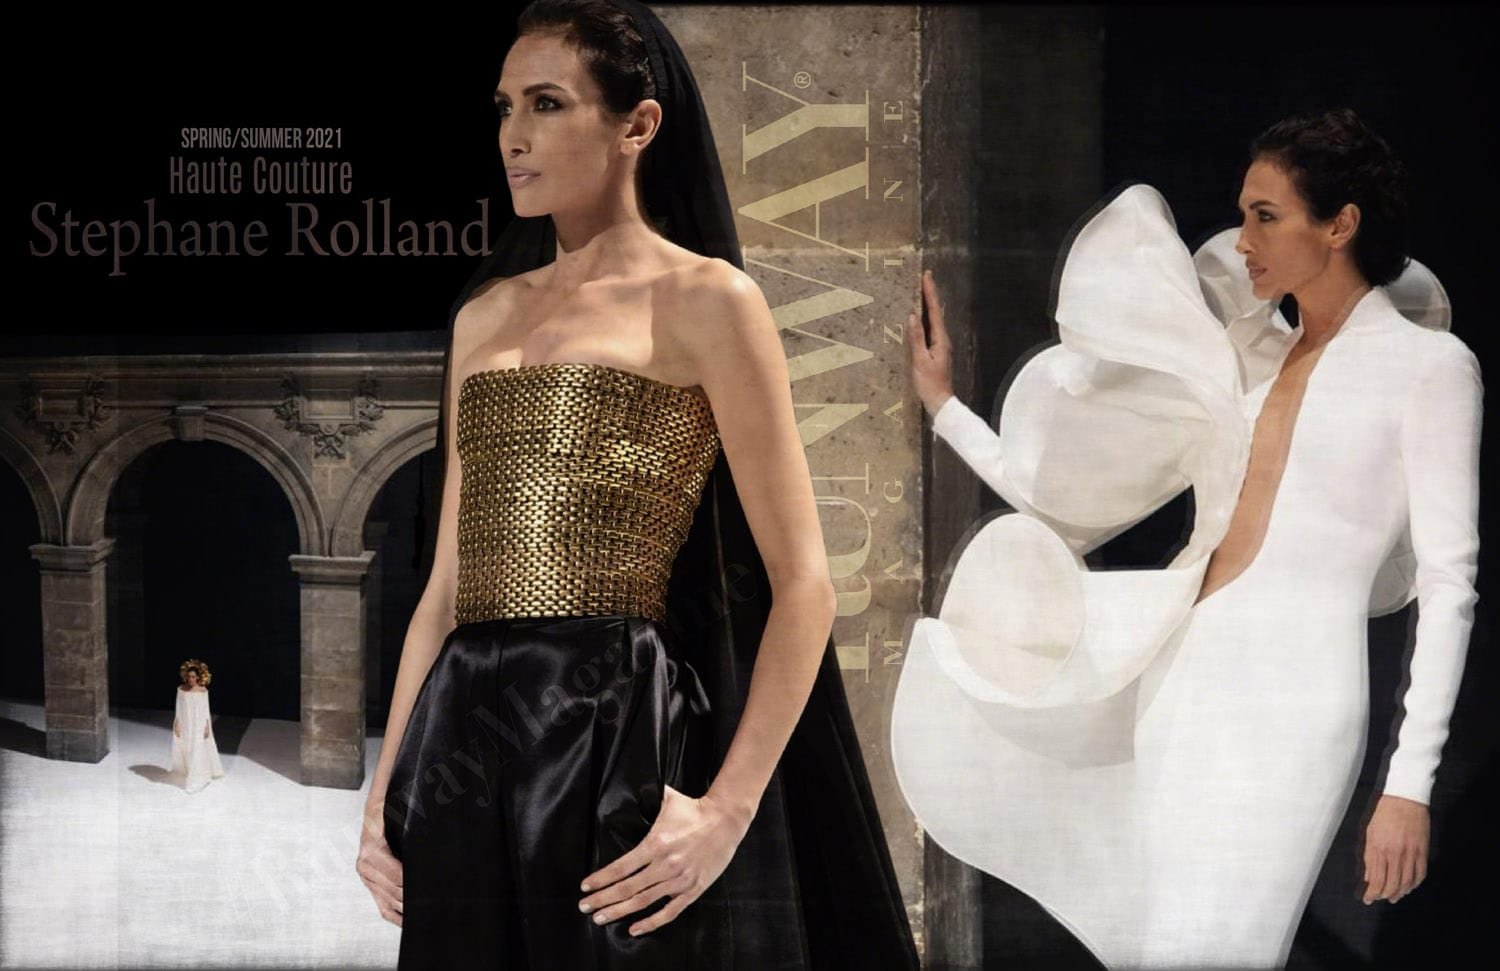 Stephane Rolland Haute Couture Spring Summer 2021 by RUNWAY MAGAZINE